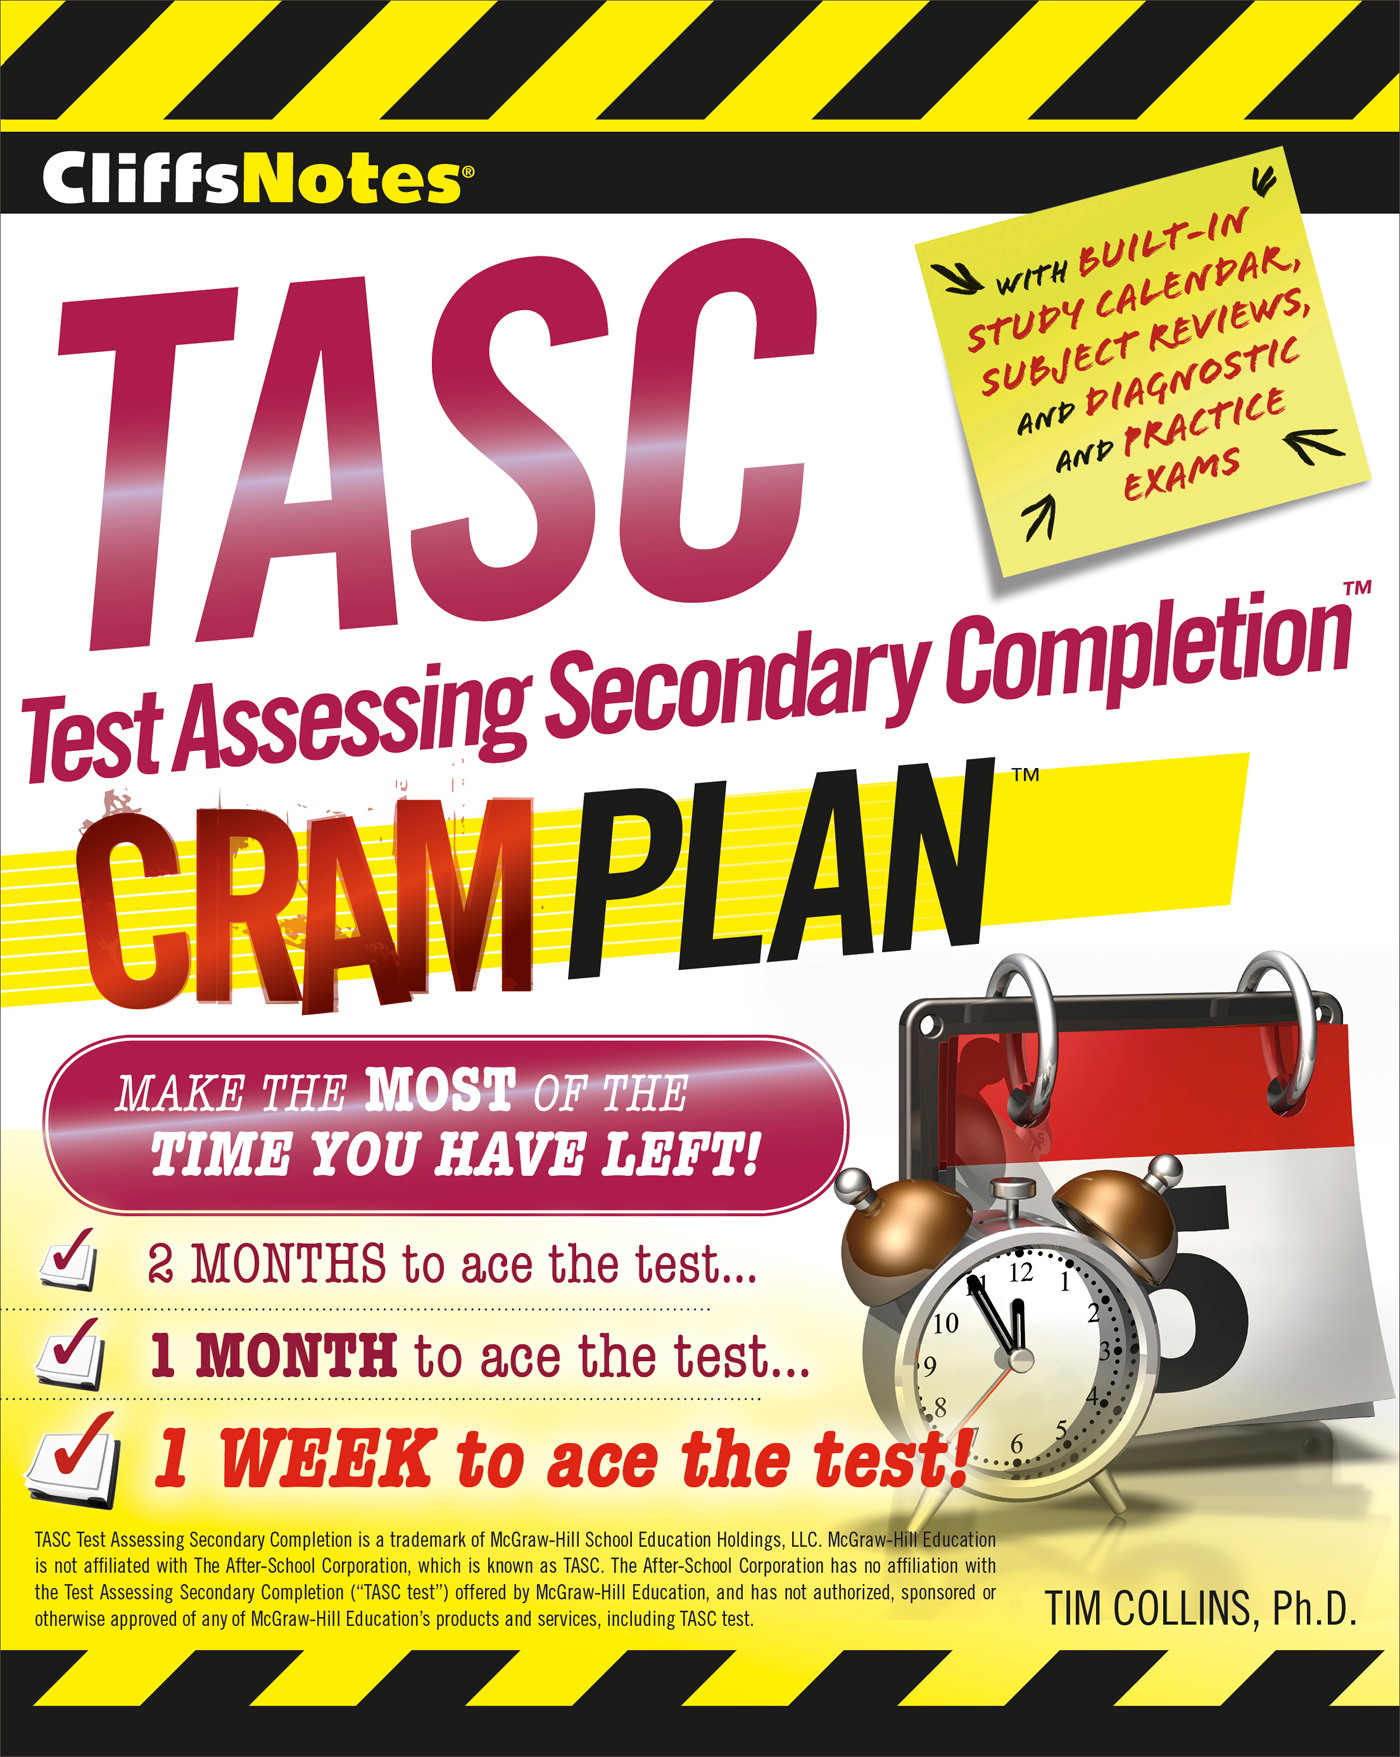 CliffsNotes TASC Test Assessing Secondary Completion™ Cram Plan-9780544373310